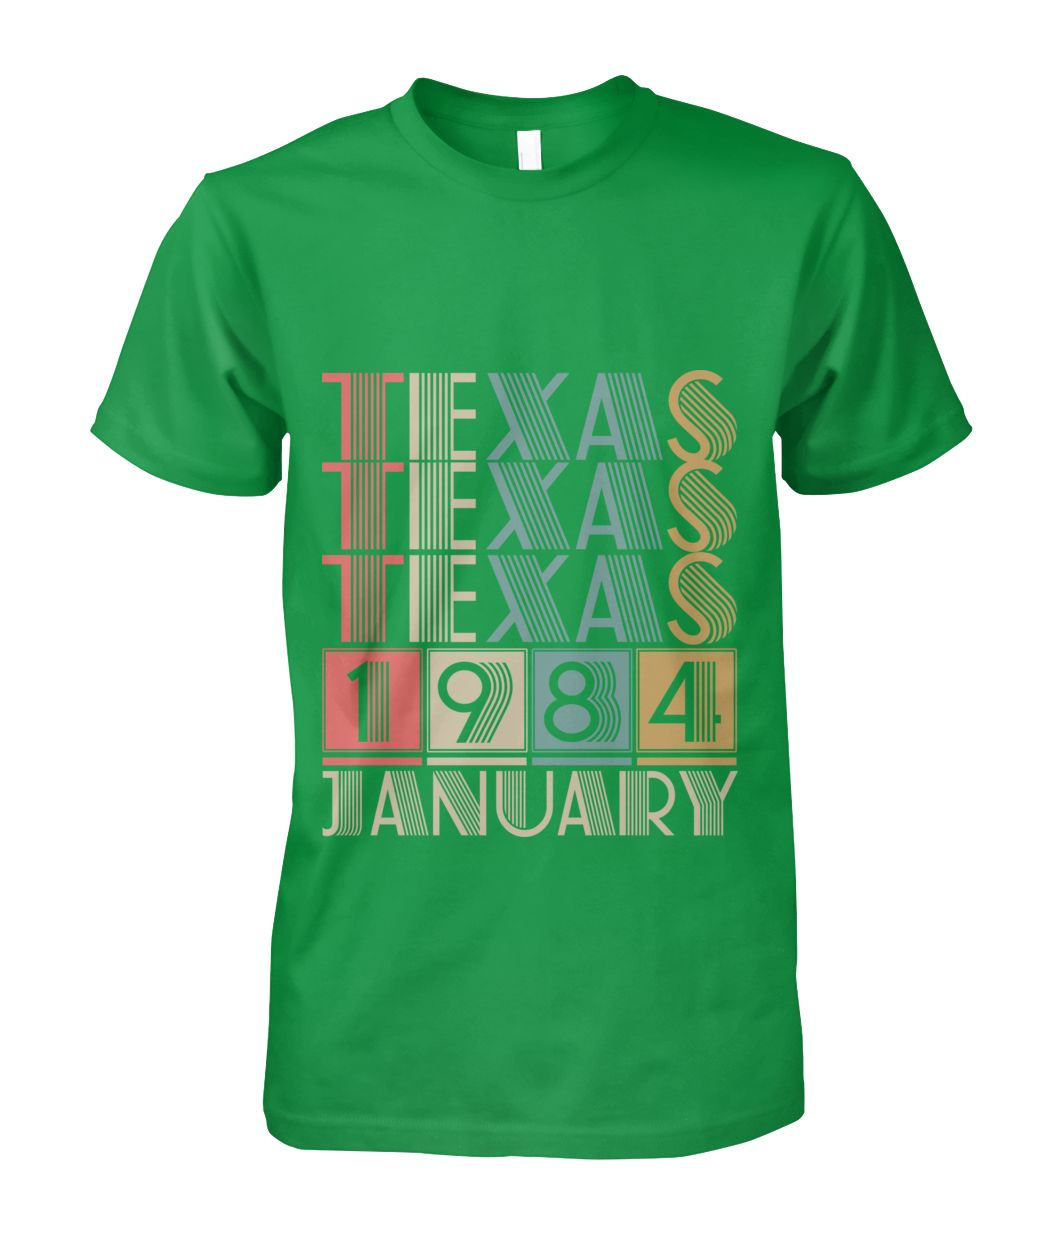 Born in Texas in January 1984 t shirt-Short Sleeves - TEEHOT.COM